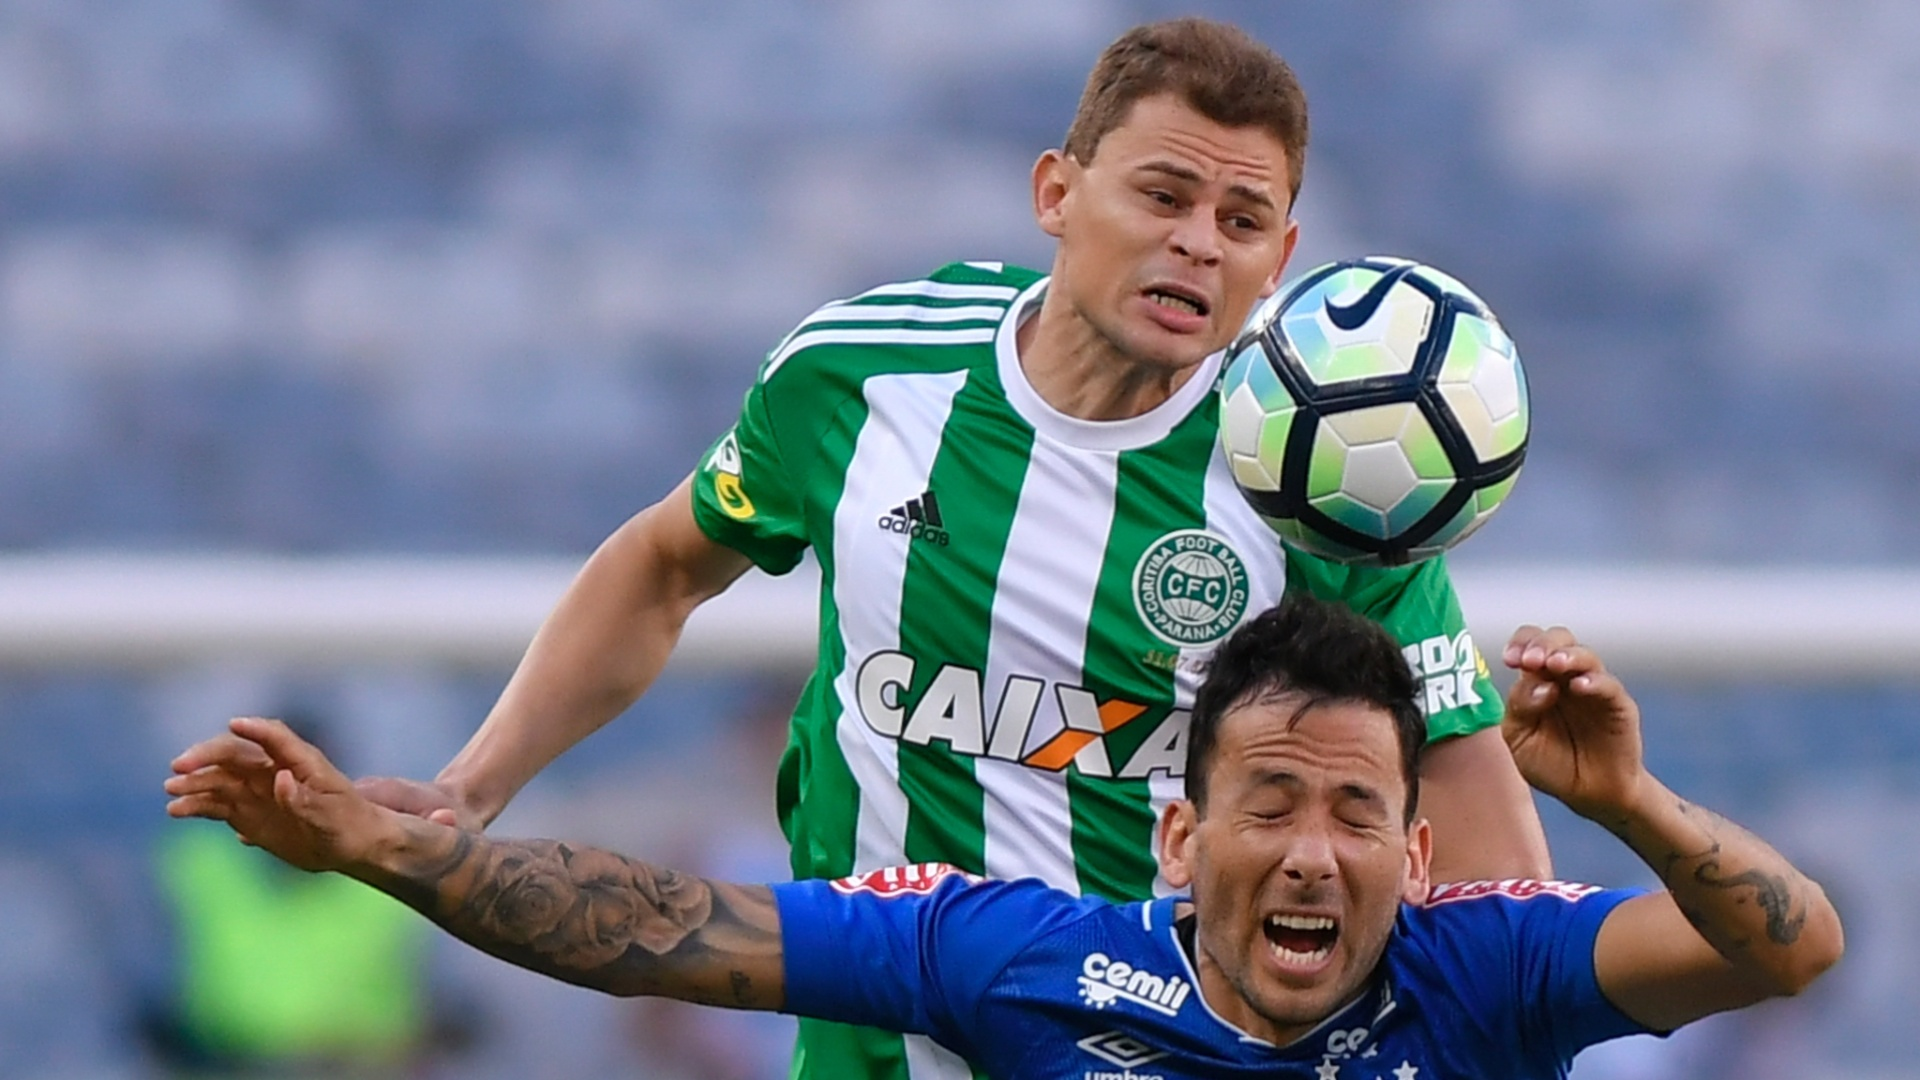 Ariel Cabral, do Cruzeiro, disputa lance contra rival do Coritiba, no Mineirão